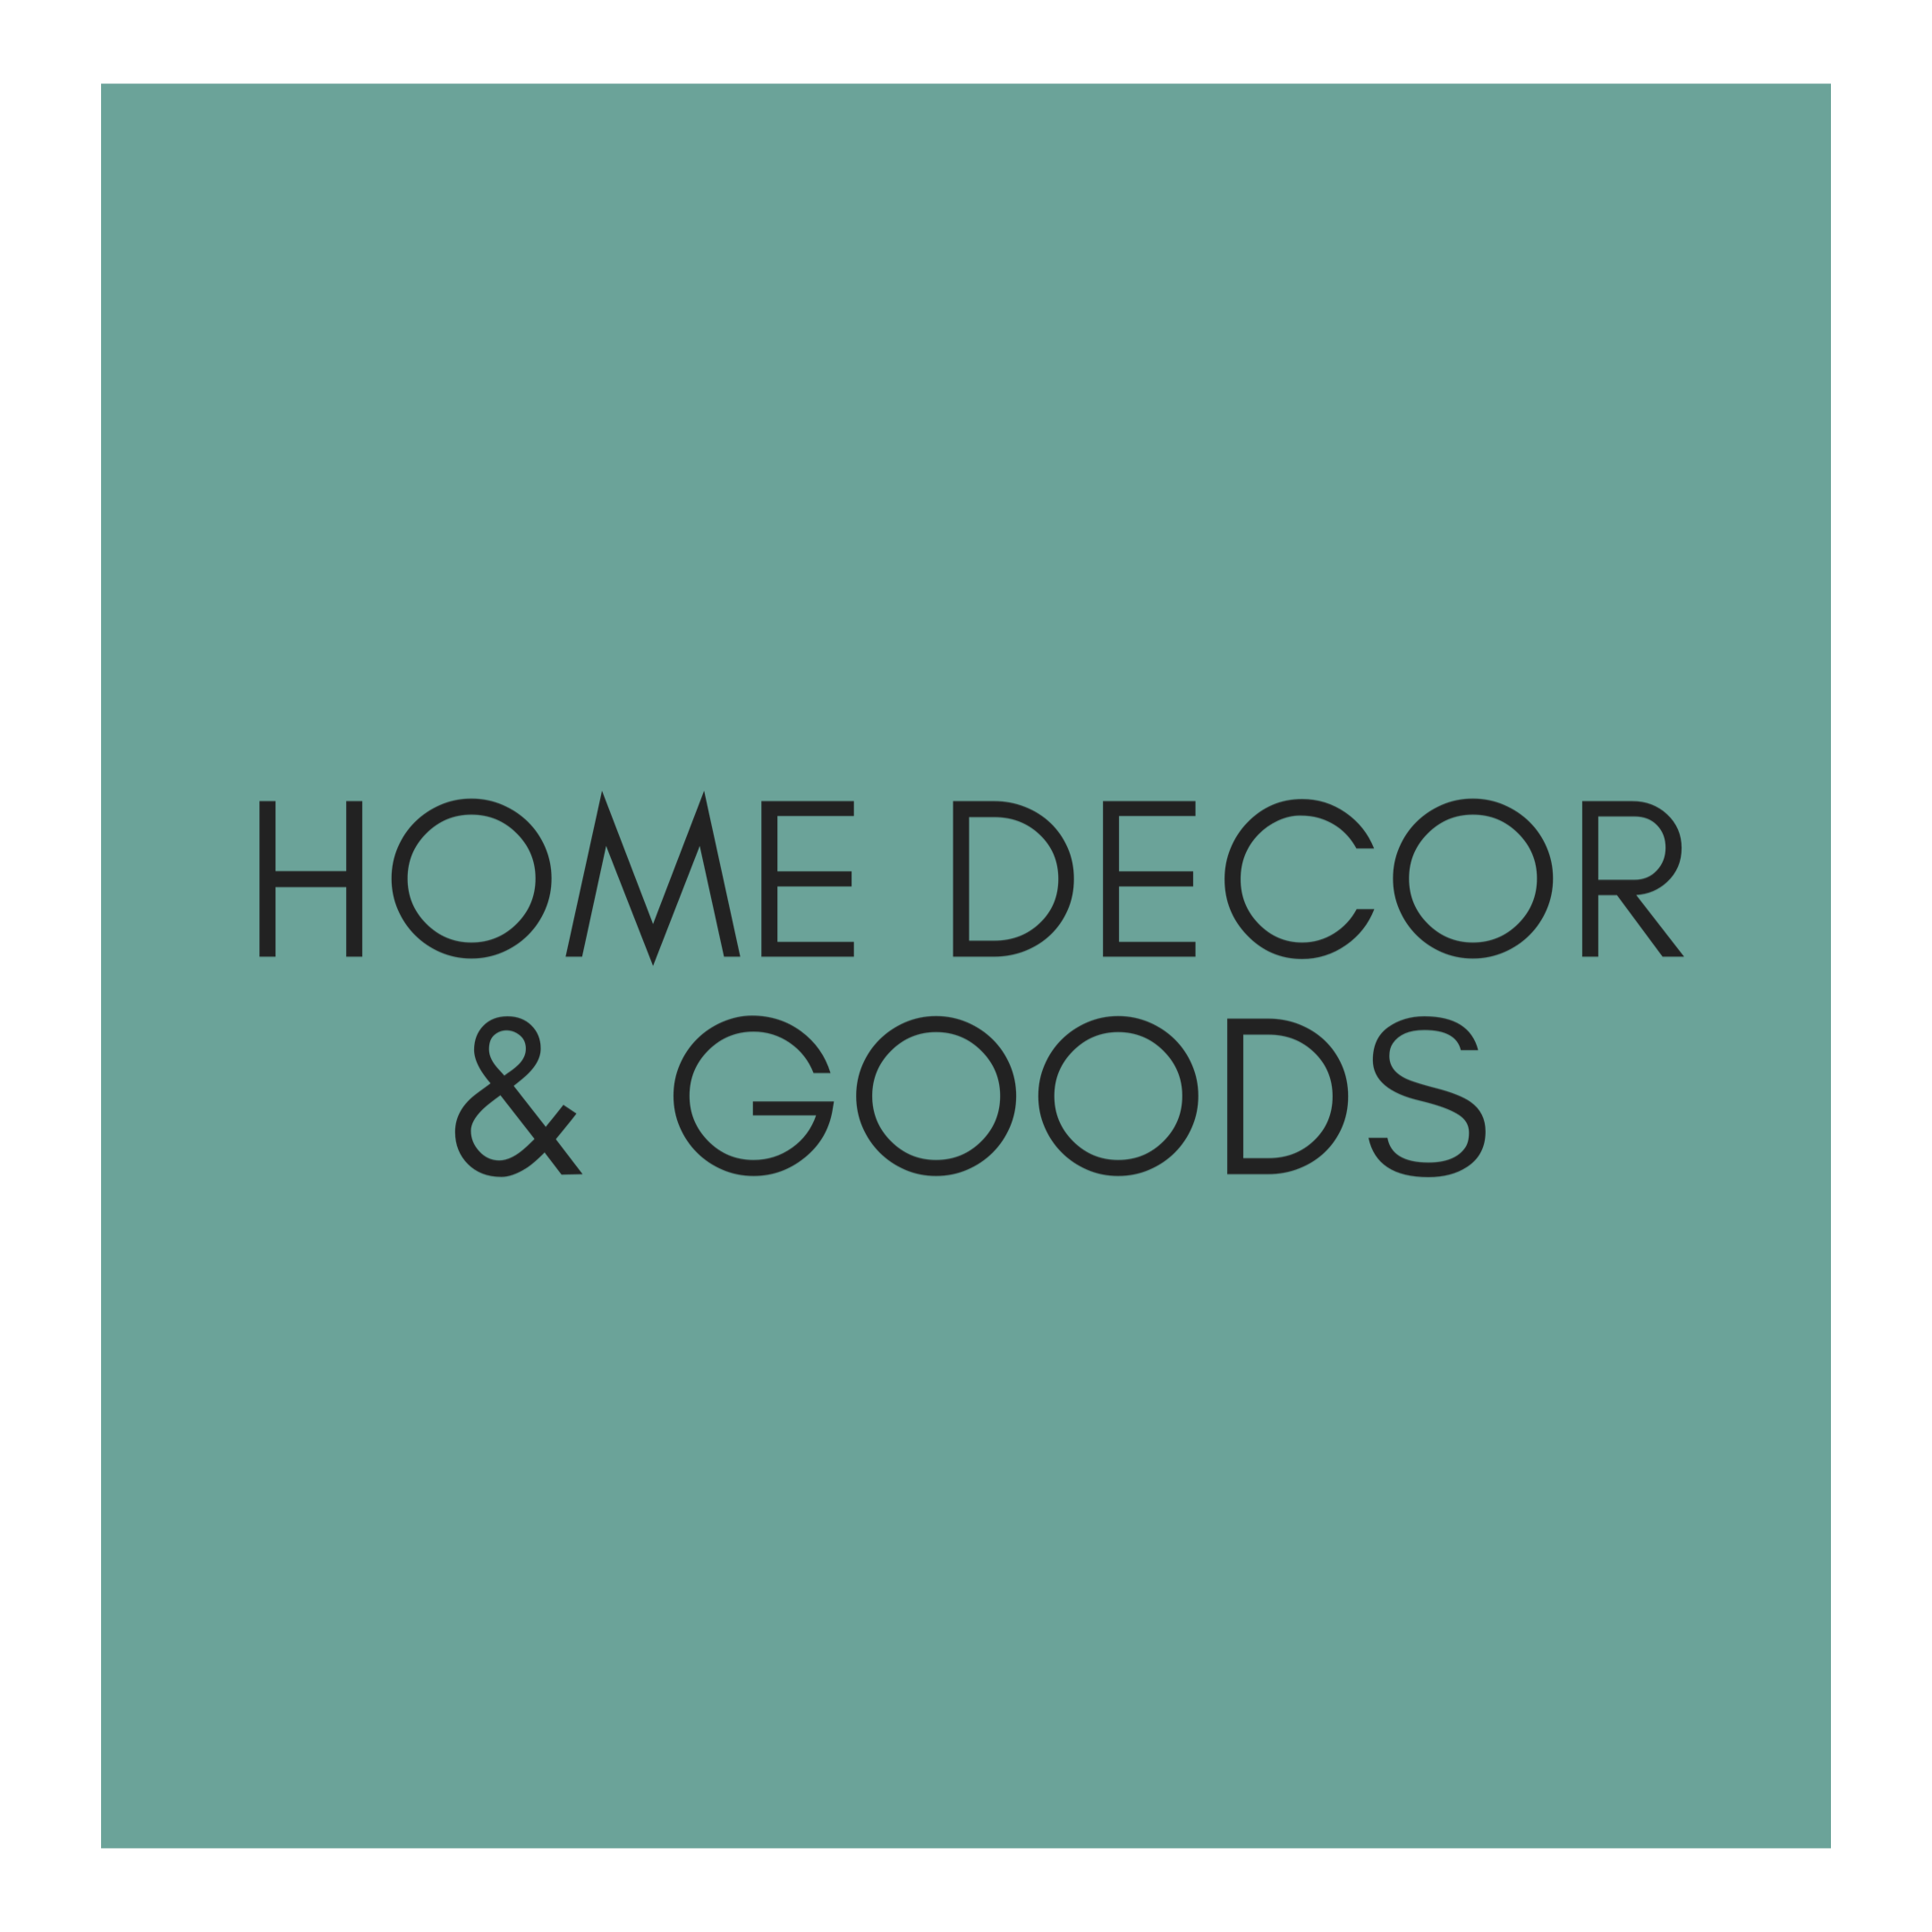 Home Decor & Goods